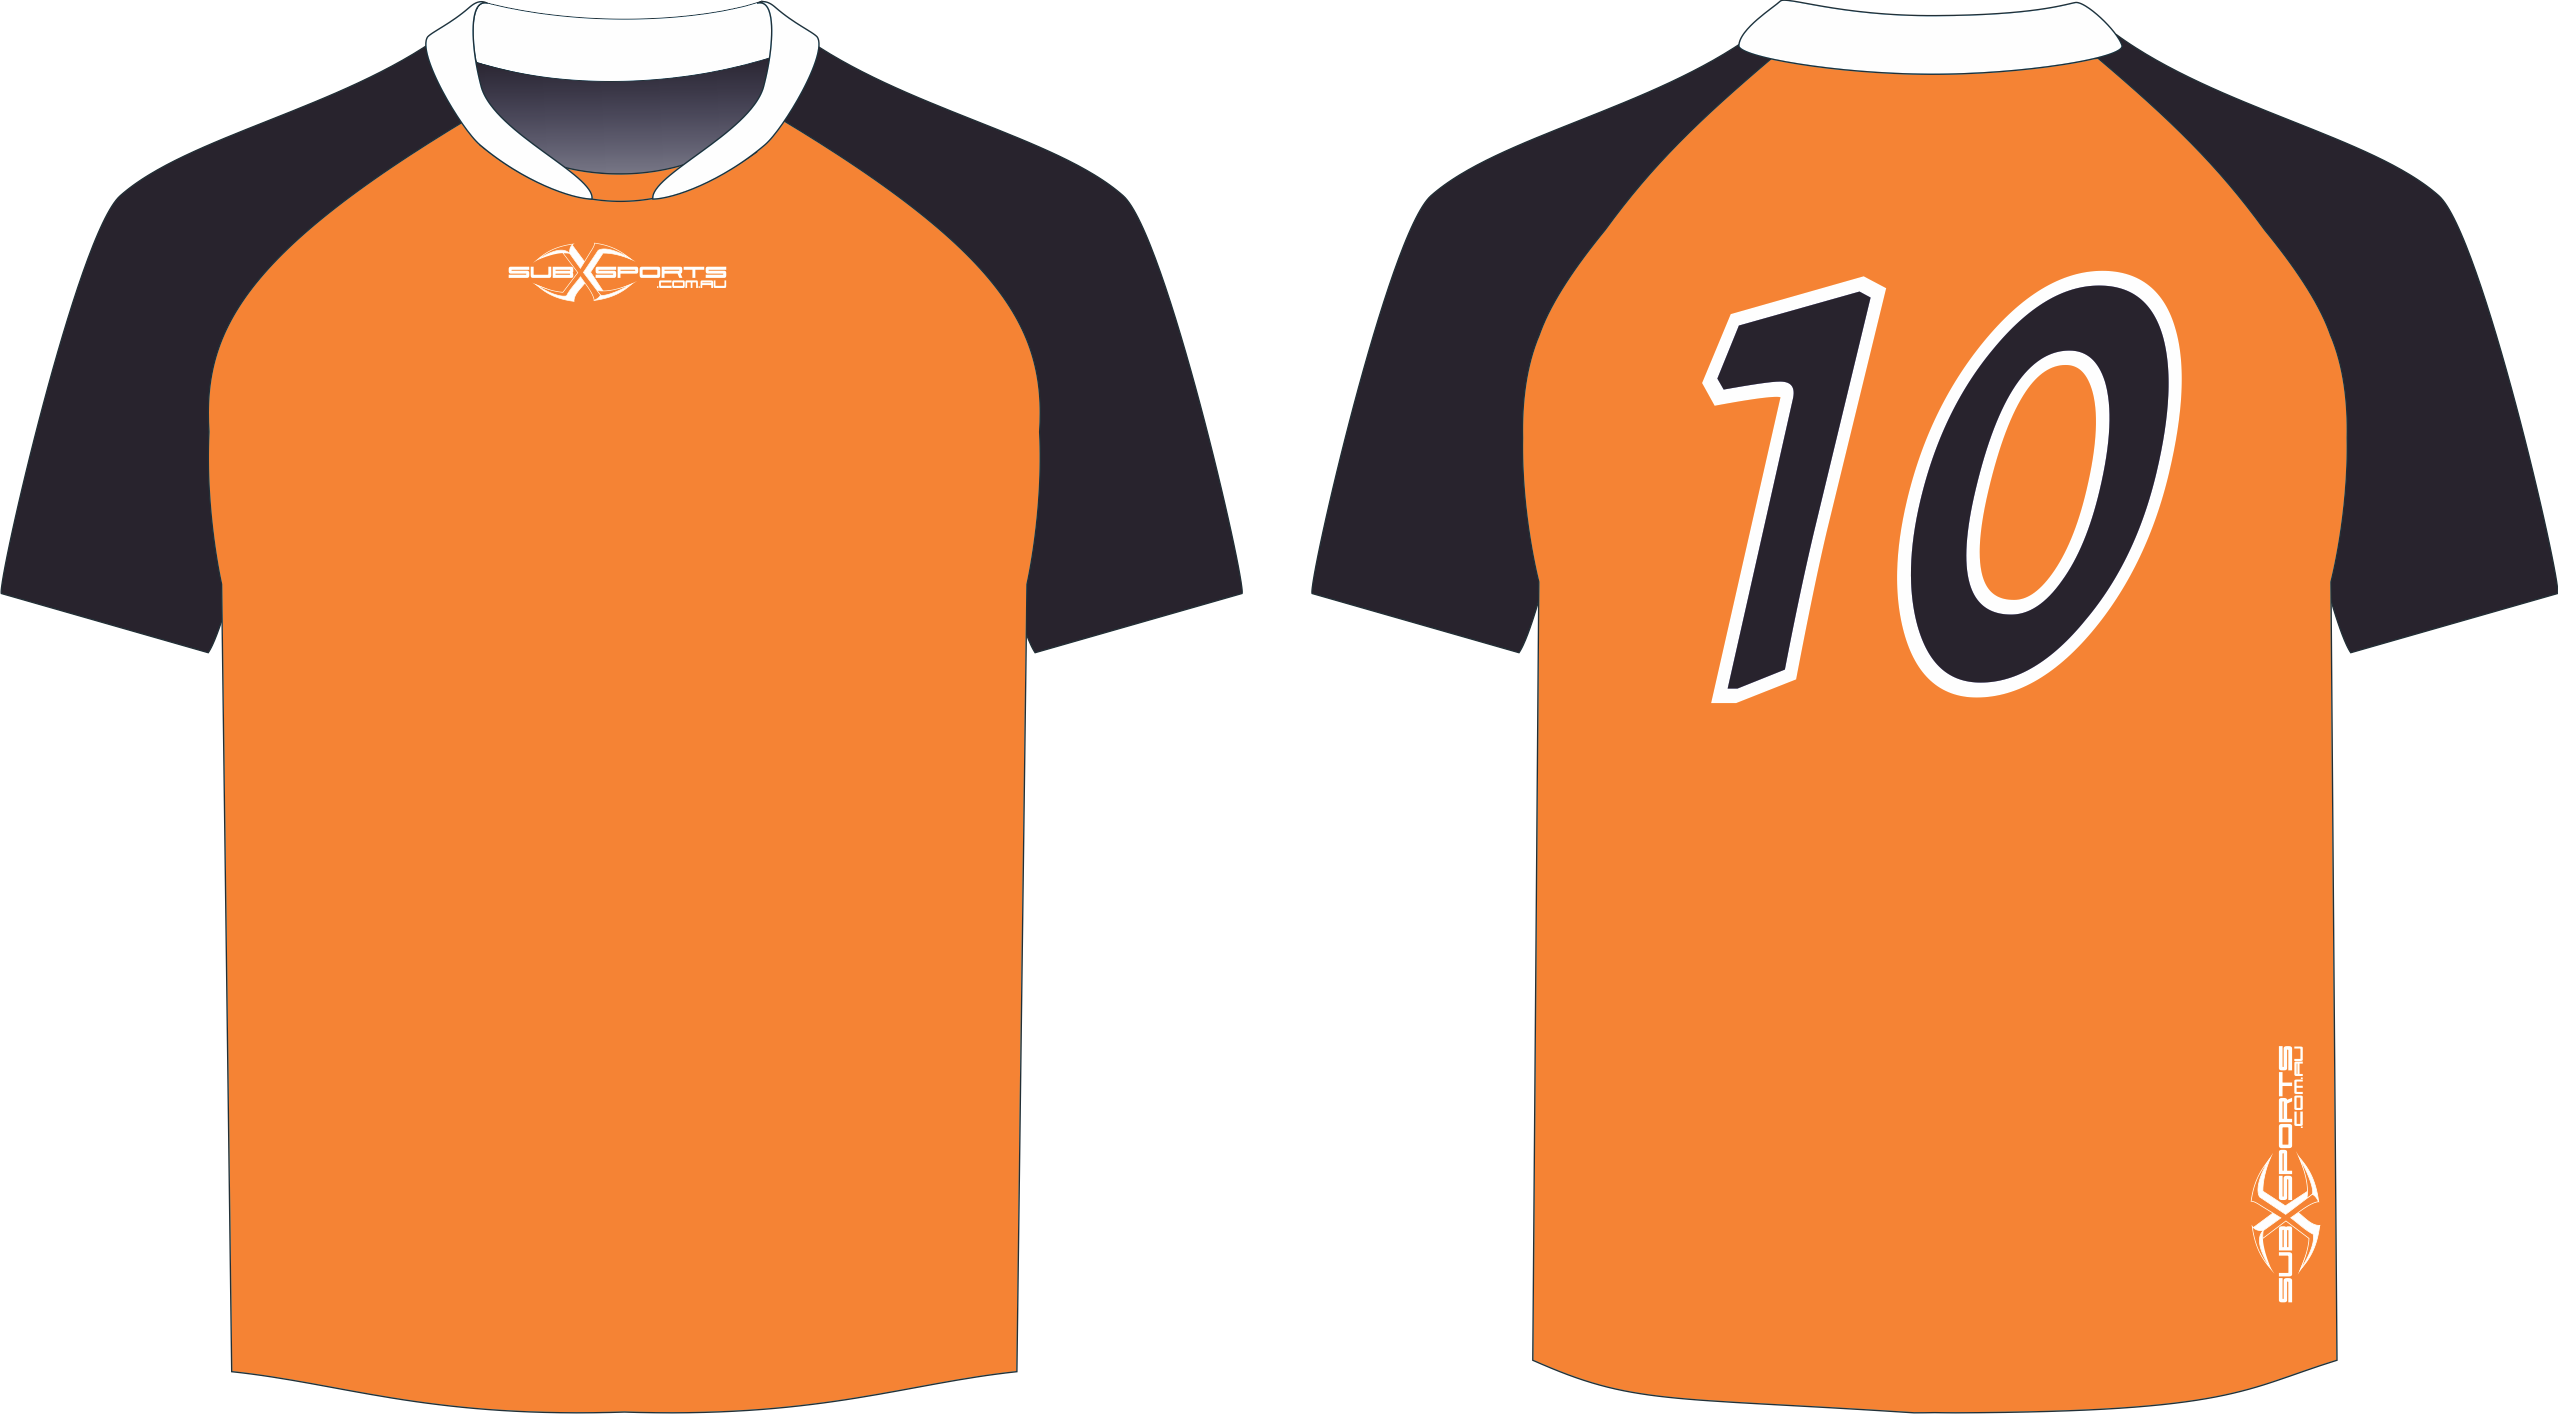 S206XJ Jersey Orange Black.png